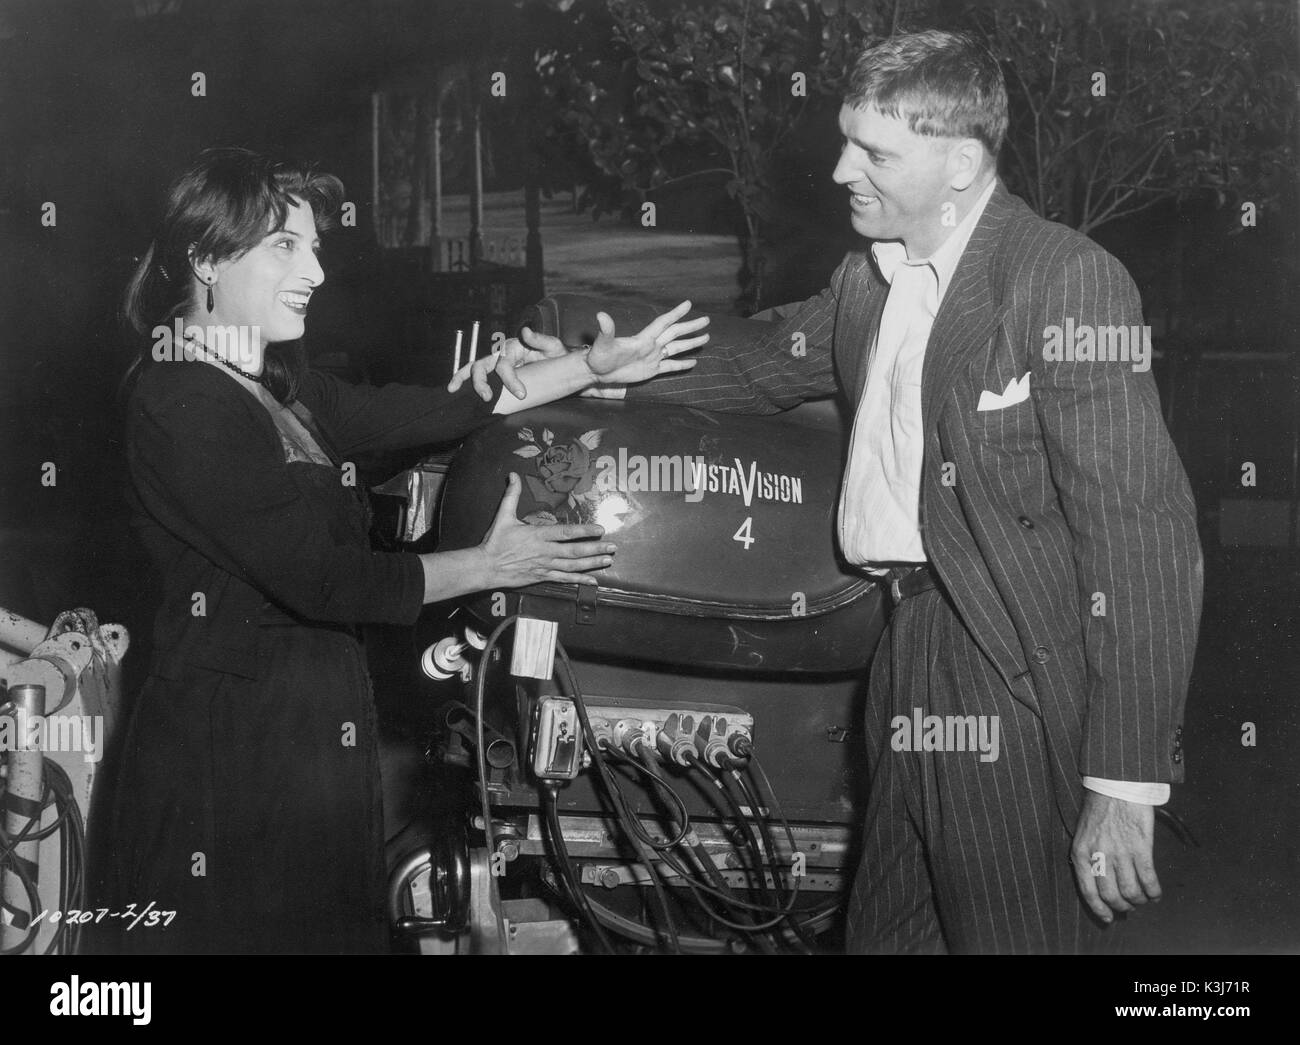 Co-stars ANNA MAGNANI and BURT LANCASTER greet each other over the VISTAVISION CAMERA which has painted on it the emblem of THE ROSE TATTOO which they Co-stars ANNA MAGNANI and BURT LANCASTER greet each other over the VISTAVISION CAMERA which has painted on it the emblem of THE ROSE TATTOO - Stock Image